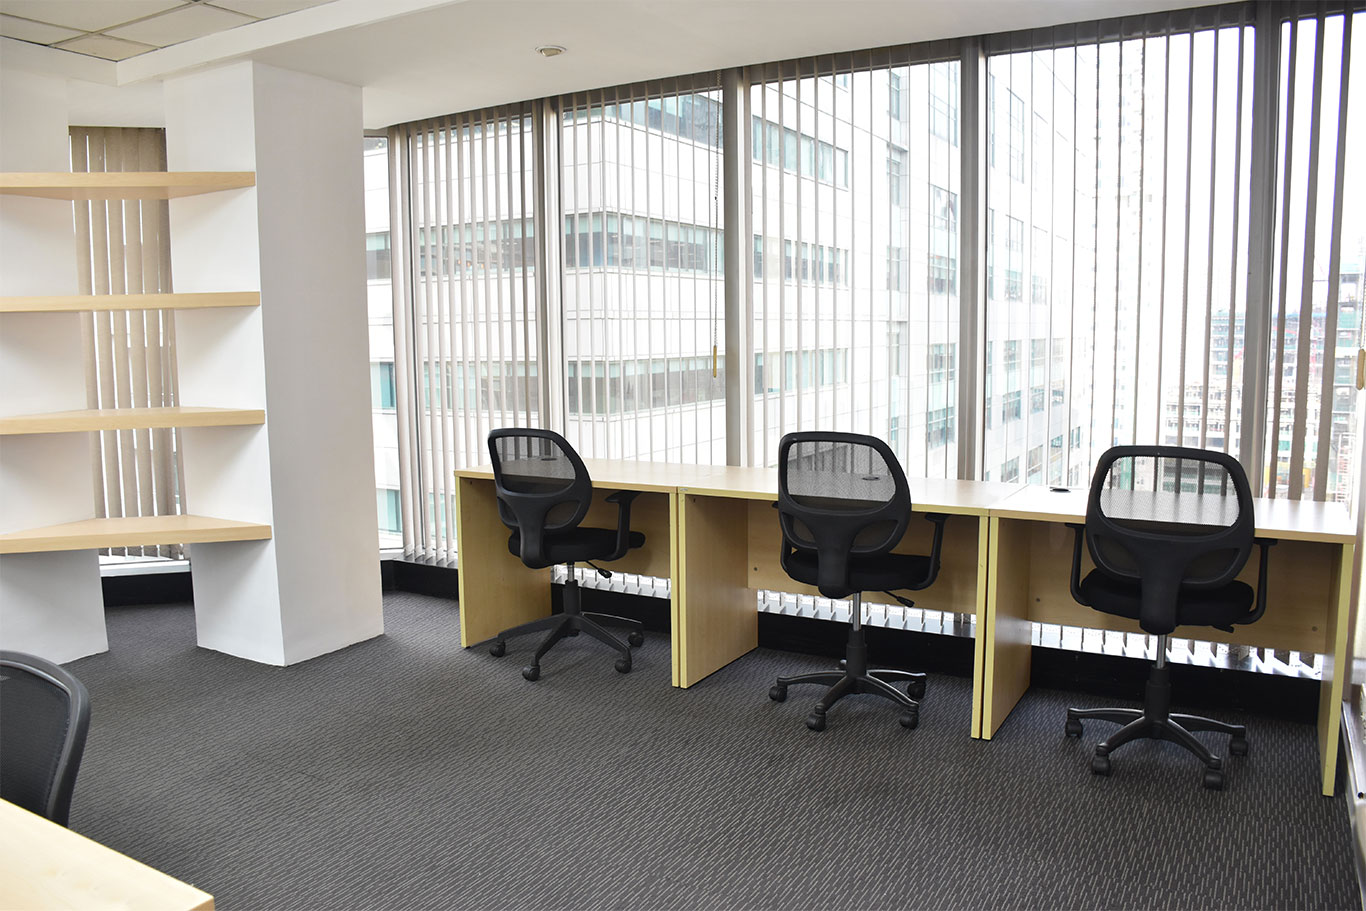 KMC Private Office Space for rent in Rufino Pacific Tower, Makati City, Manila, Philippines - EpicSpace